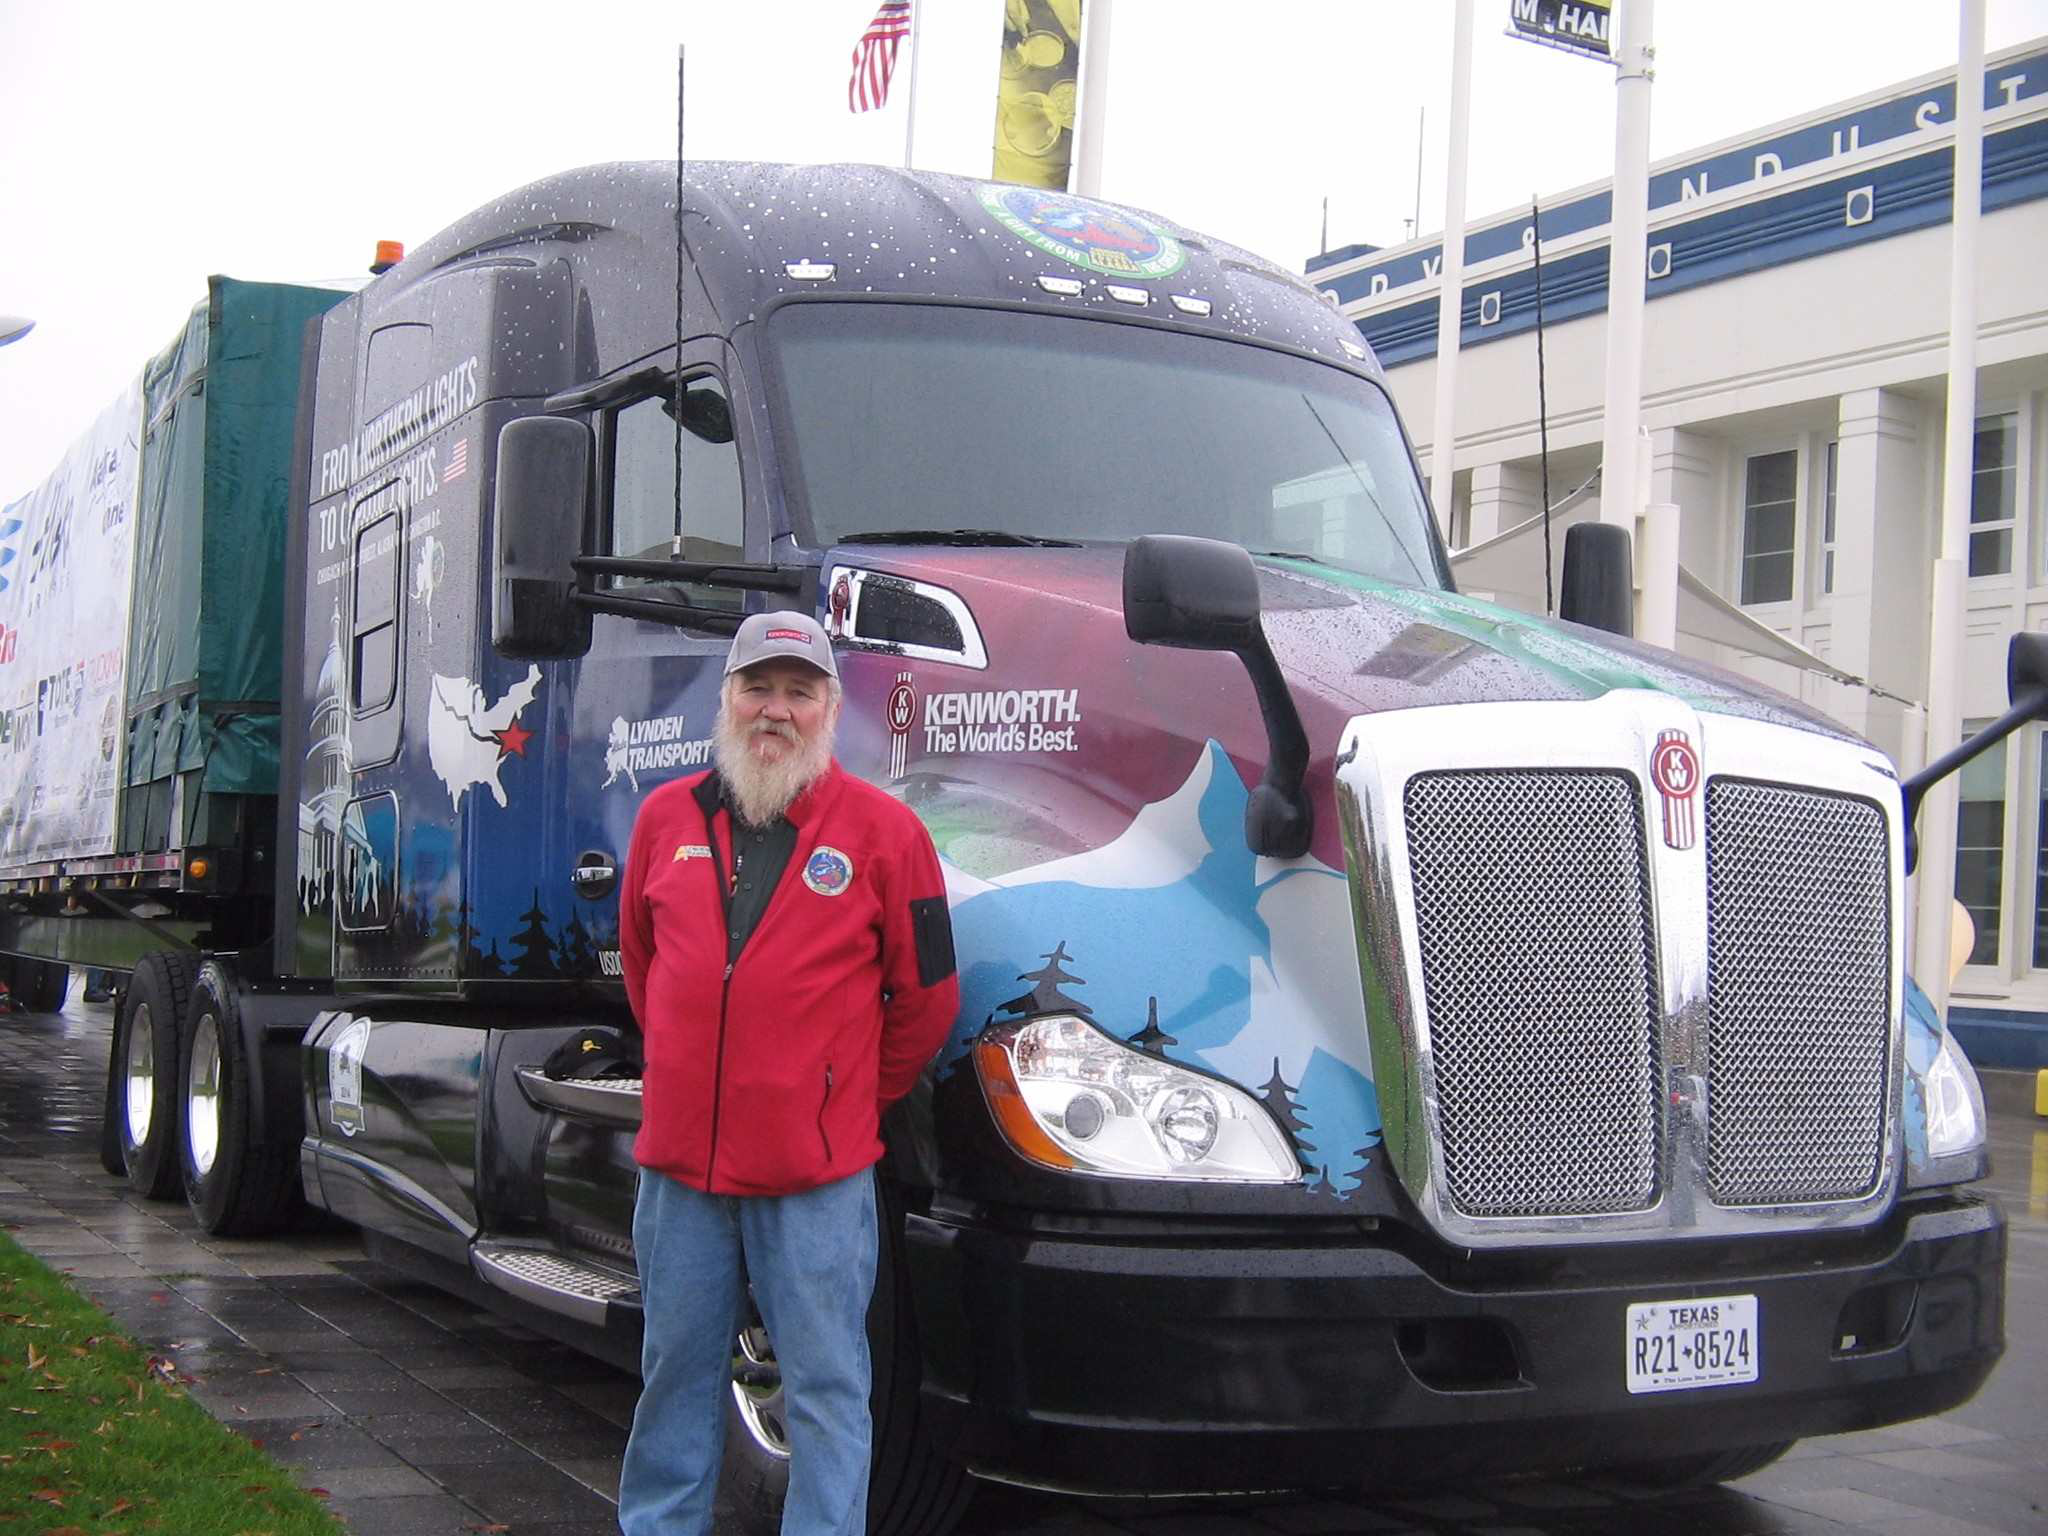 Lynden Transport driver John Schank – who has logged more than 5 million miles on the Dalton Highway between Fairbanks and Prudhoe Bay, Alaska – received the honor of serving as the tour driver for the U.S. Capitol Christmas Tree. He delivered the tree to Joint Base Andrews, Md., on Wednesday, Nov. 18, and to Washington, D.C., on Friday, Nov. 20.